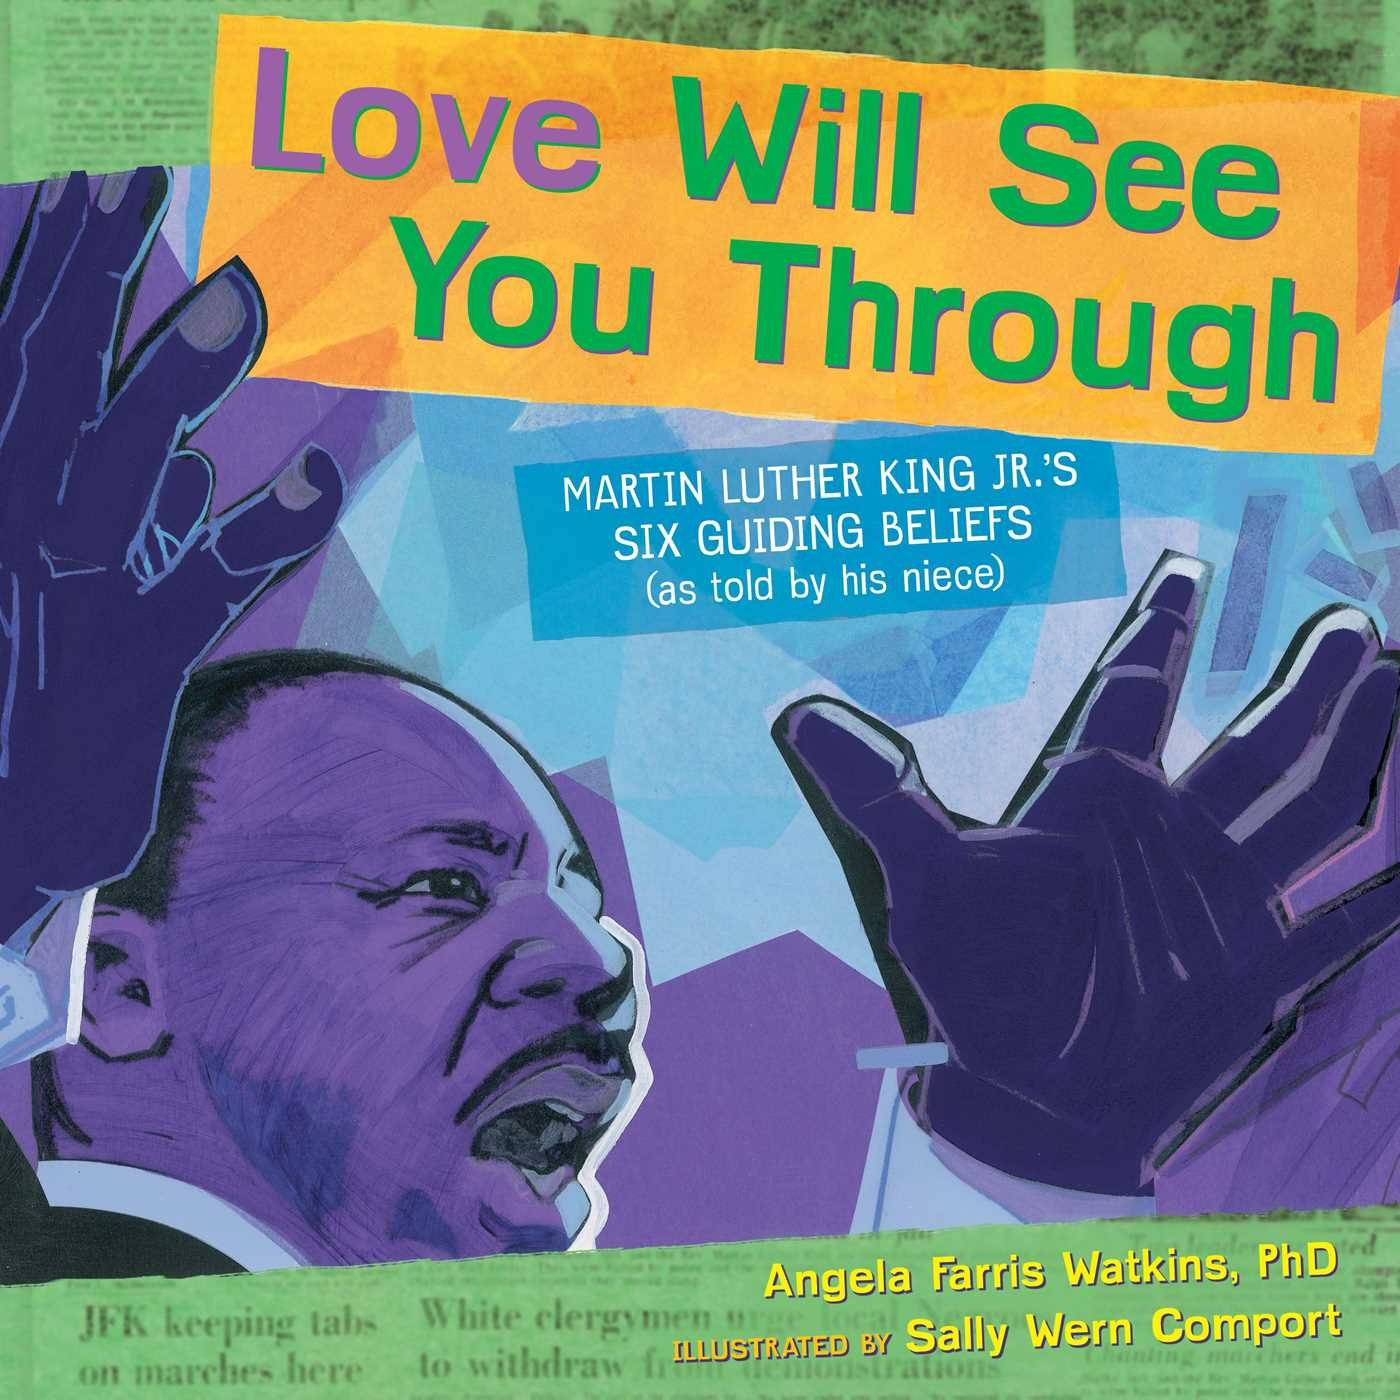 Love Will See You Through: Martin Luther King Jr.'s Six Guiding Beliefs (as told by his niece) ebook